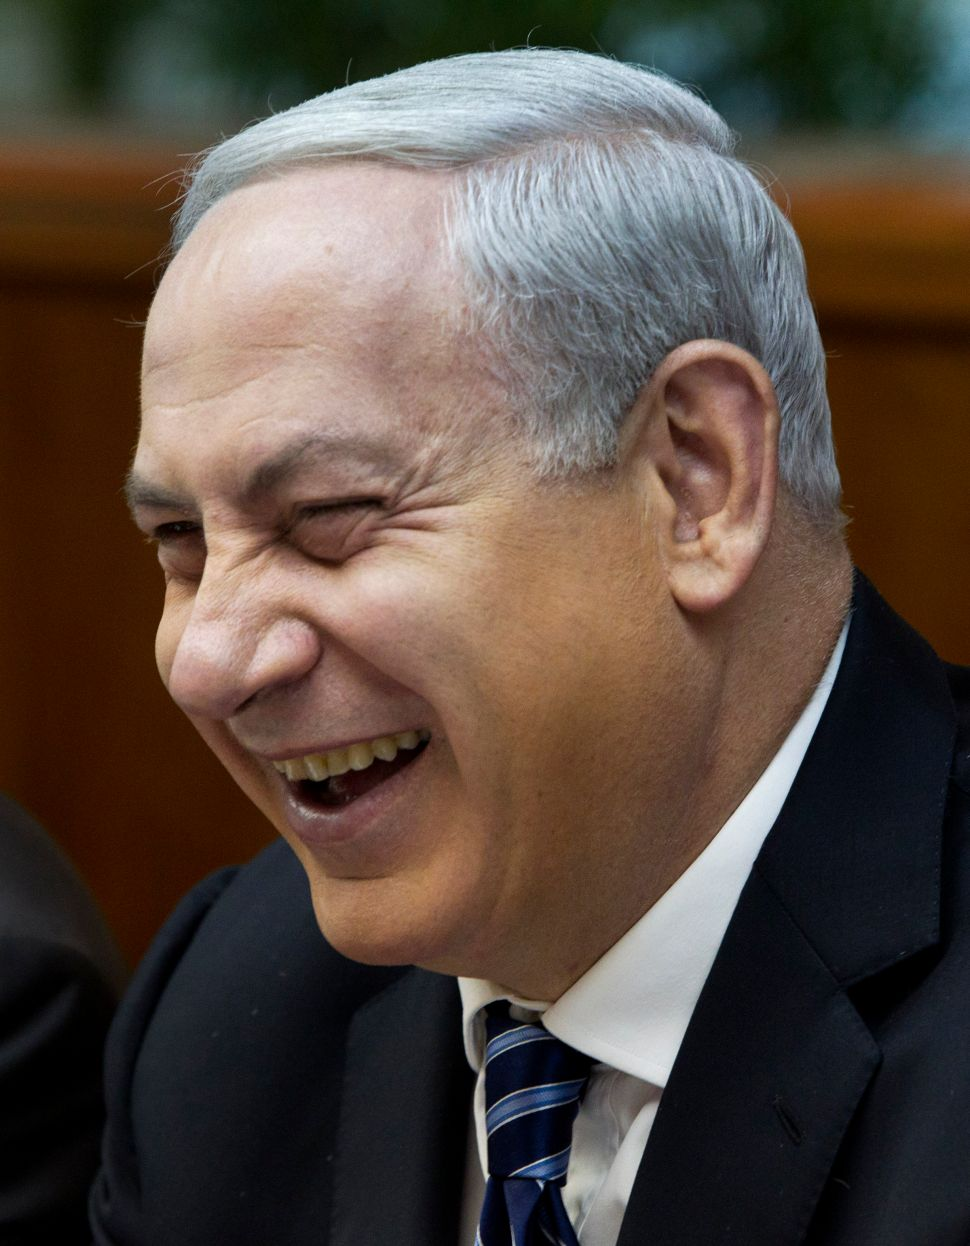 The Big Losers of the Israeli Election are Extremists and the Pundits